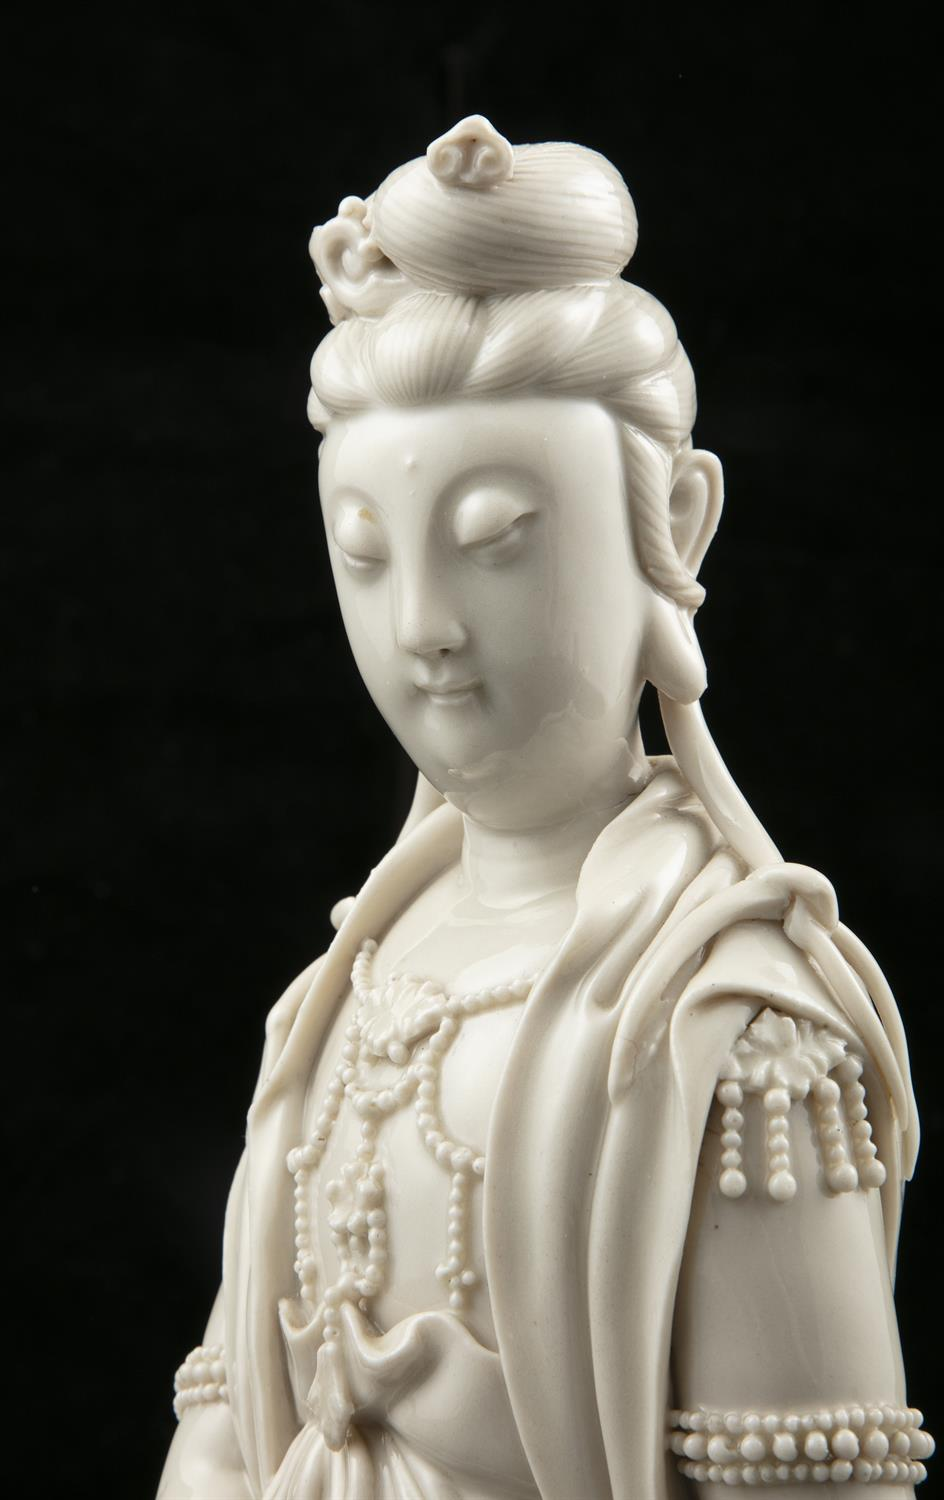 A LARGE DEHUA FIGURE OF A SEATED GUANYIN IMPRESSED WITH A HE CHAOZONG 何朝宗 CALABASH SHAPED SEAL - Image 36 of 48